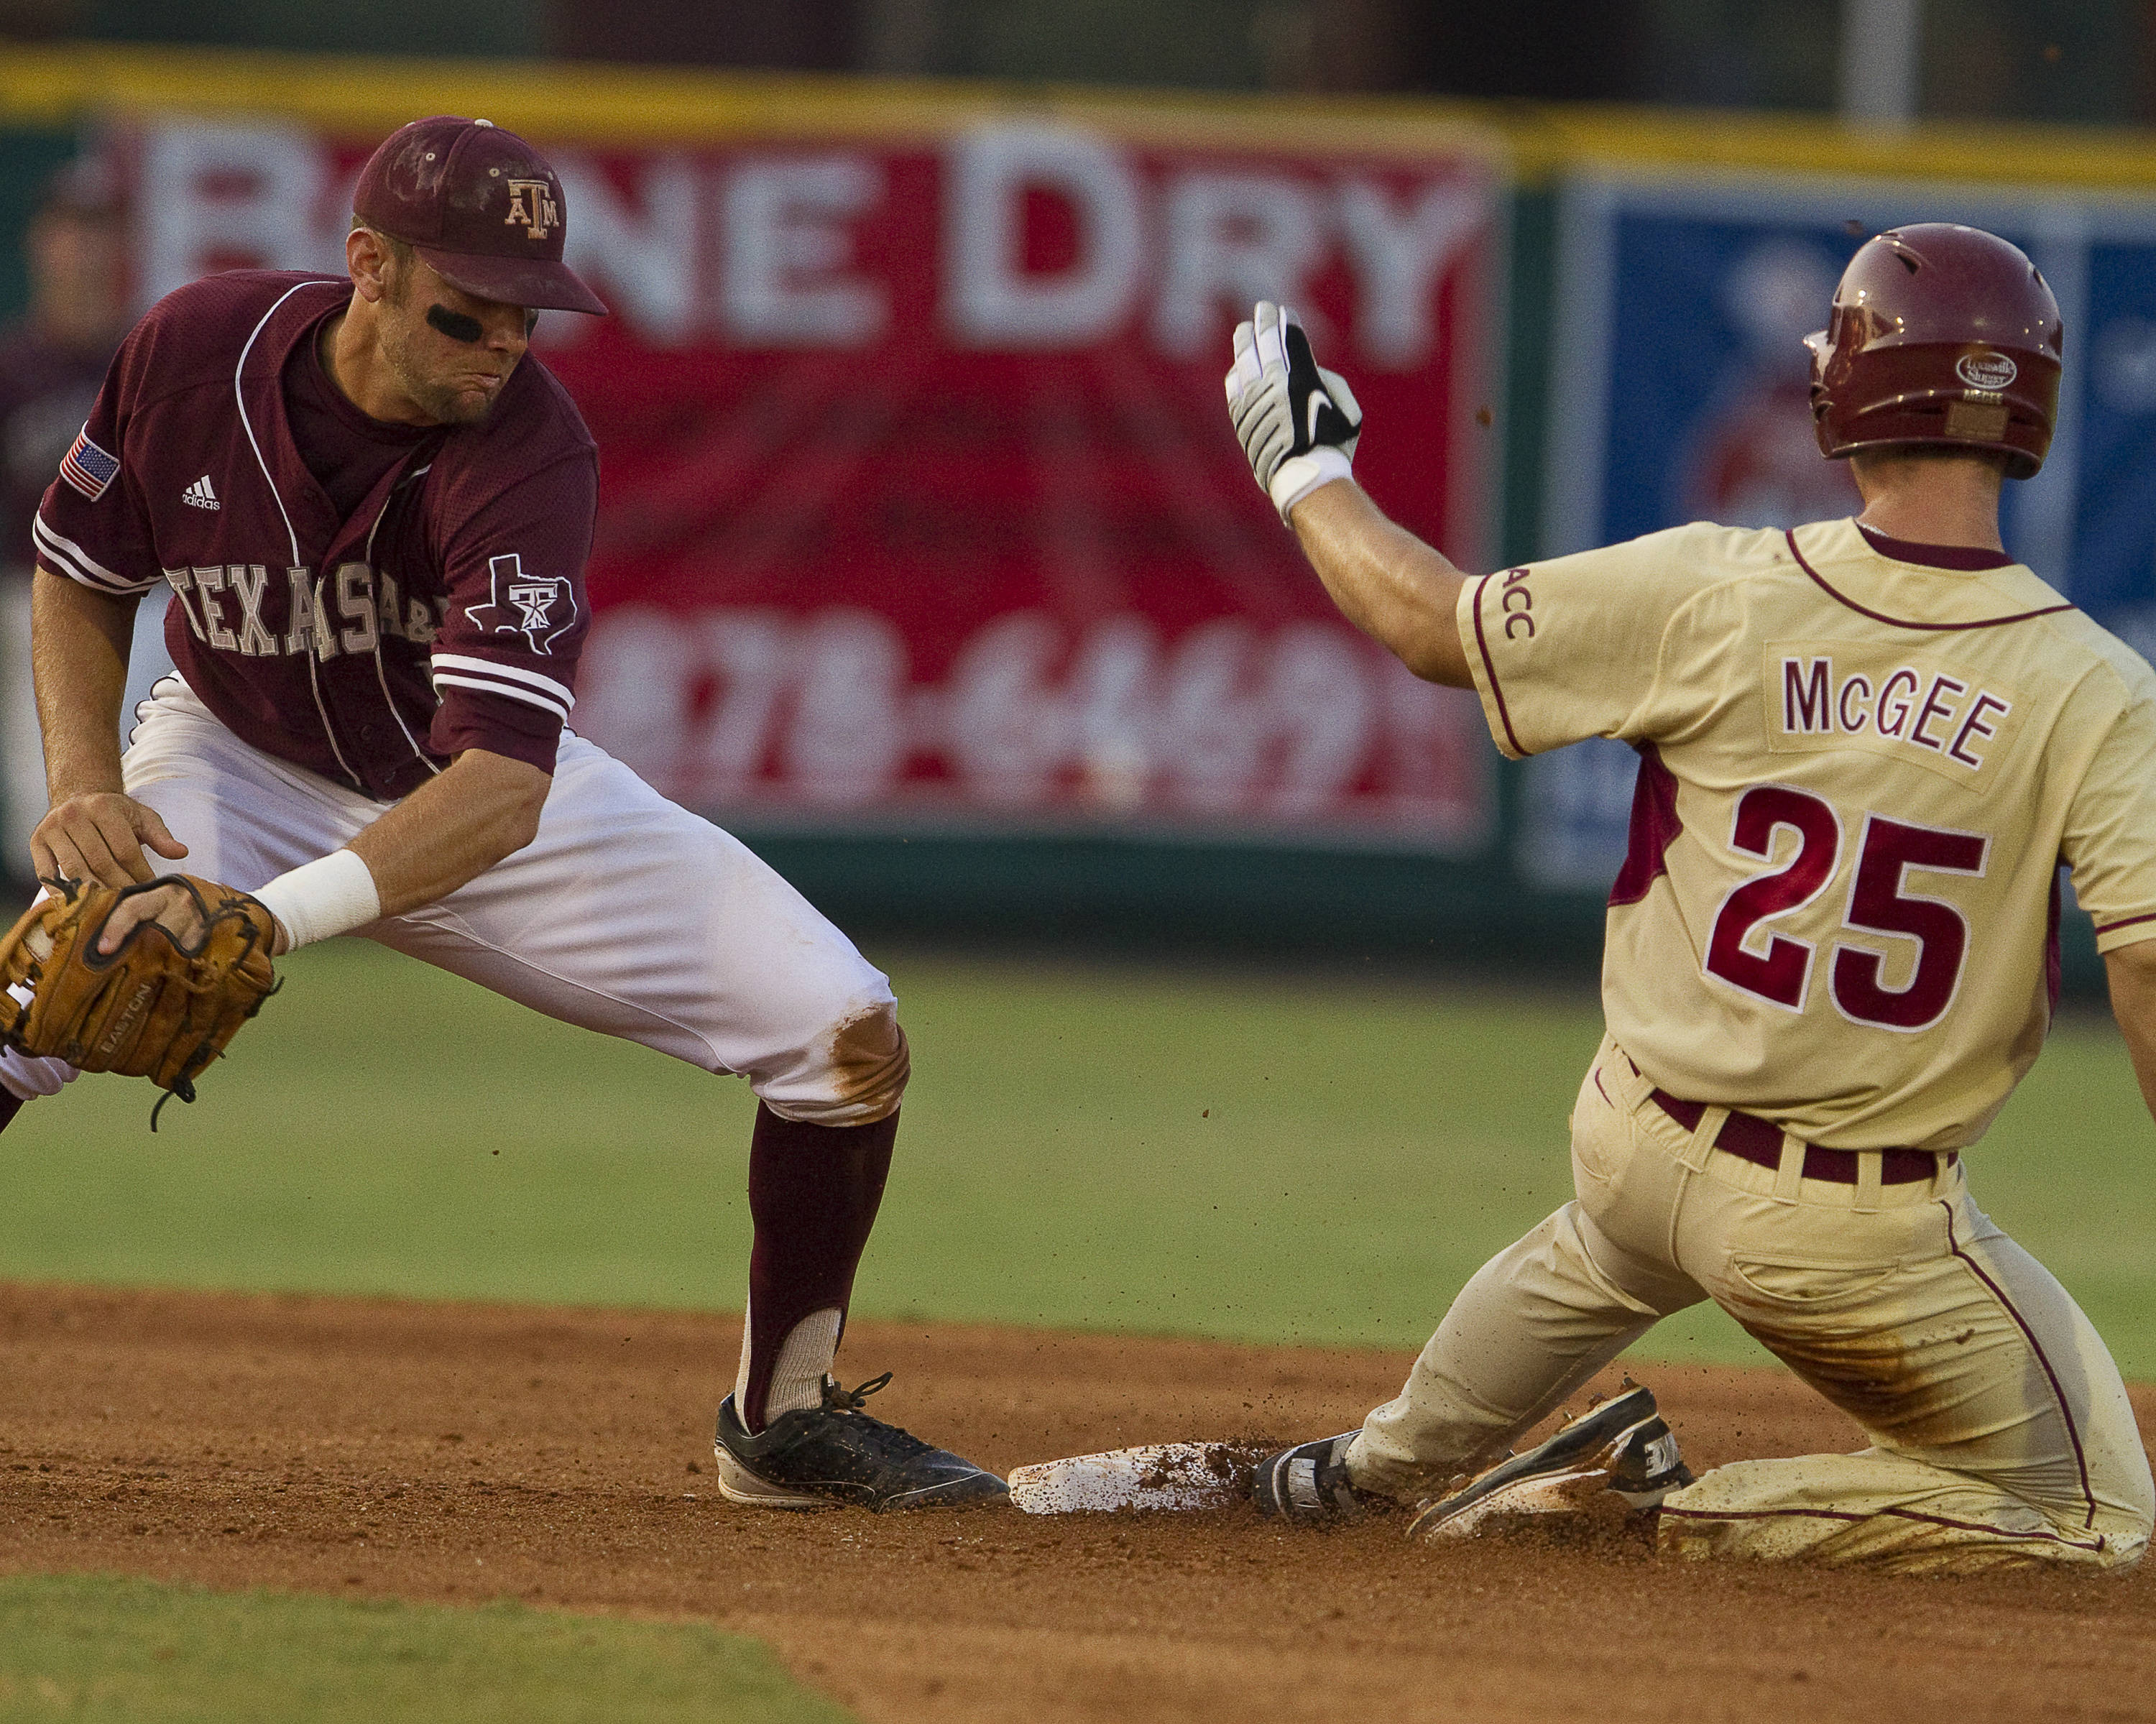 Mike McGee (25) slides into second.